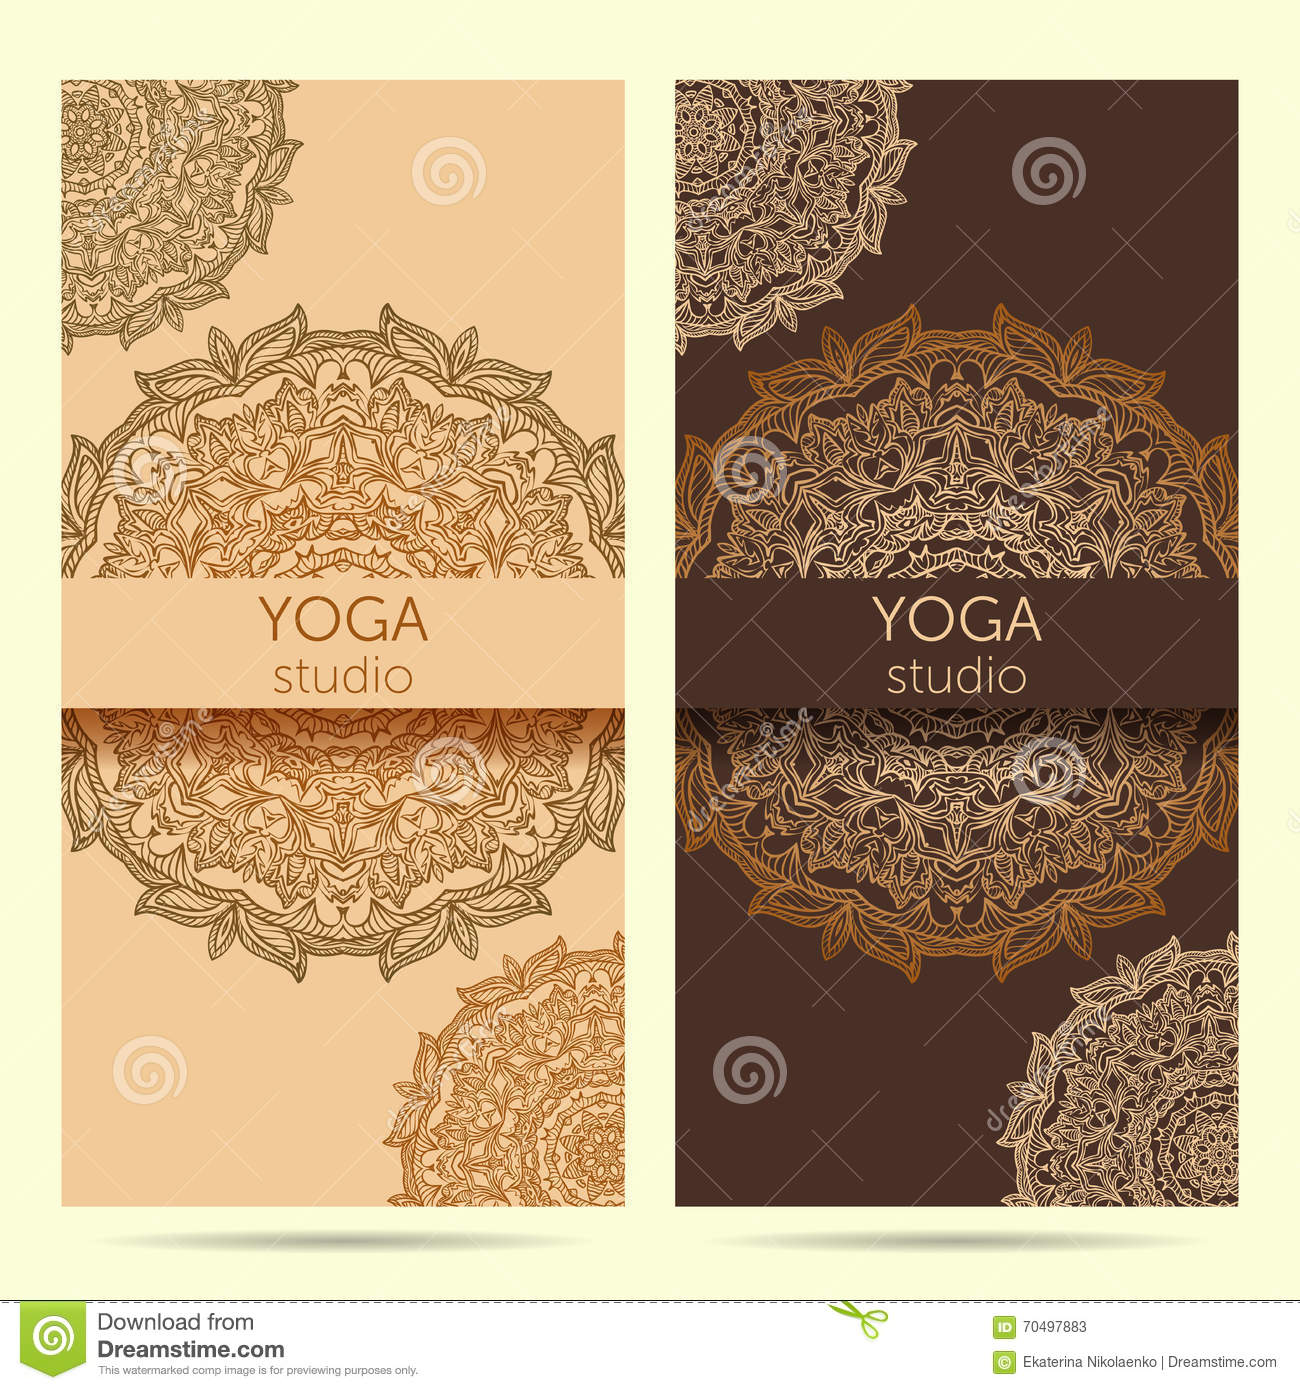 Design Template For Yoga Studio With Mandala Ornament Background Stock Vector Illustration Of Class Design 70497883